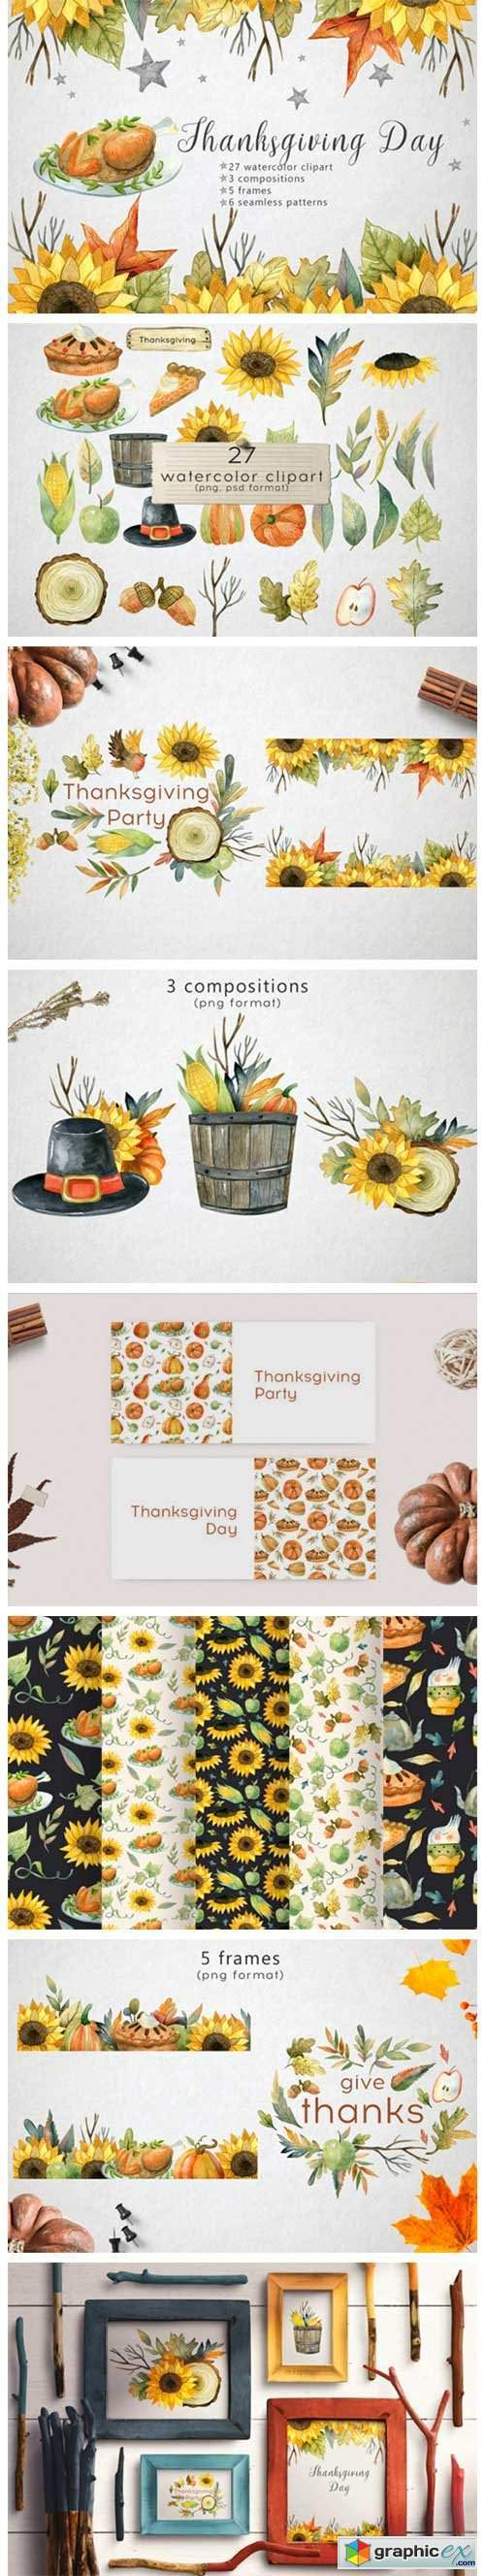 Watercolor Thanksgiving Day